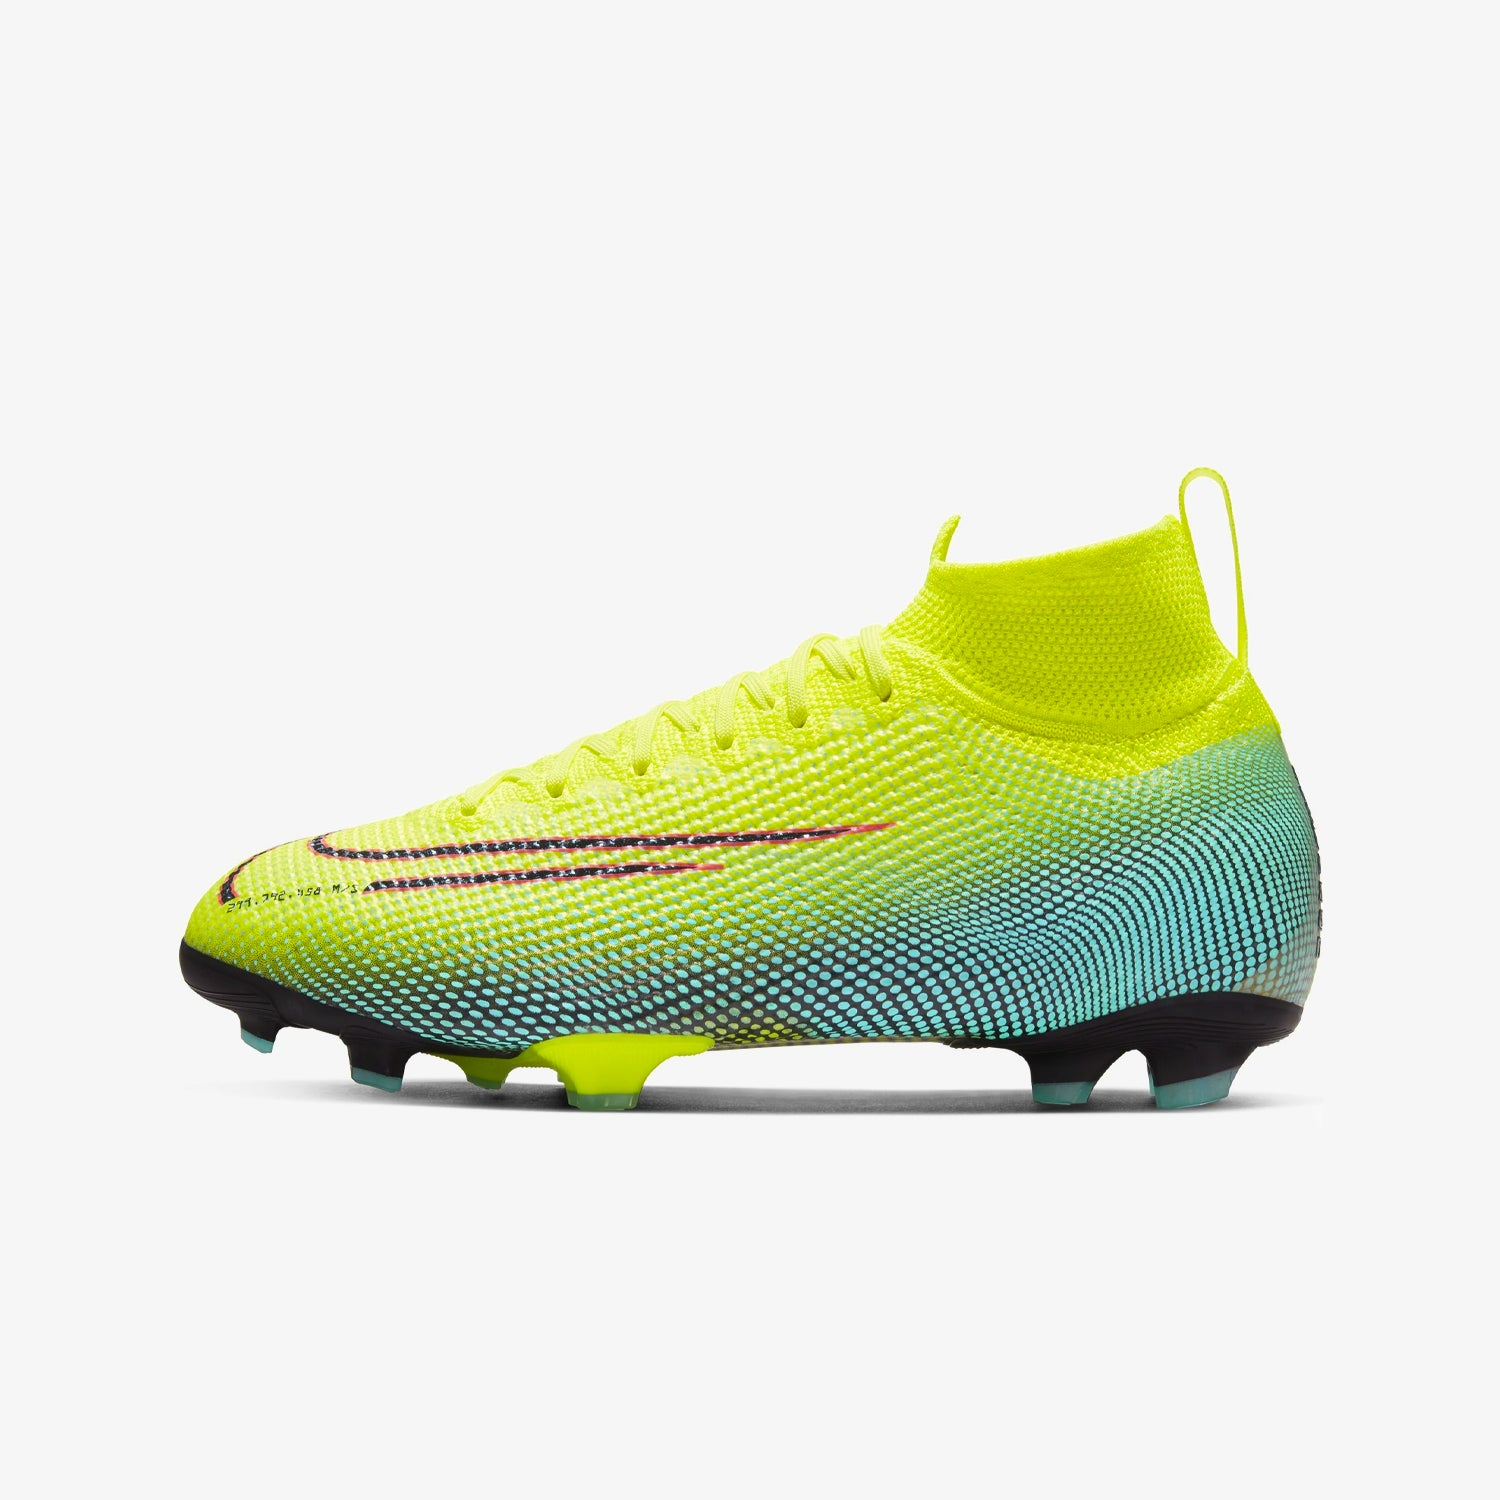 Jr. Mercurial Superfly 7 Elite MDS FG Big Kids' Firm-Ground Soccer Cleat